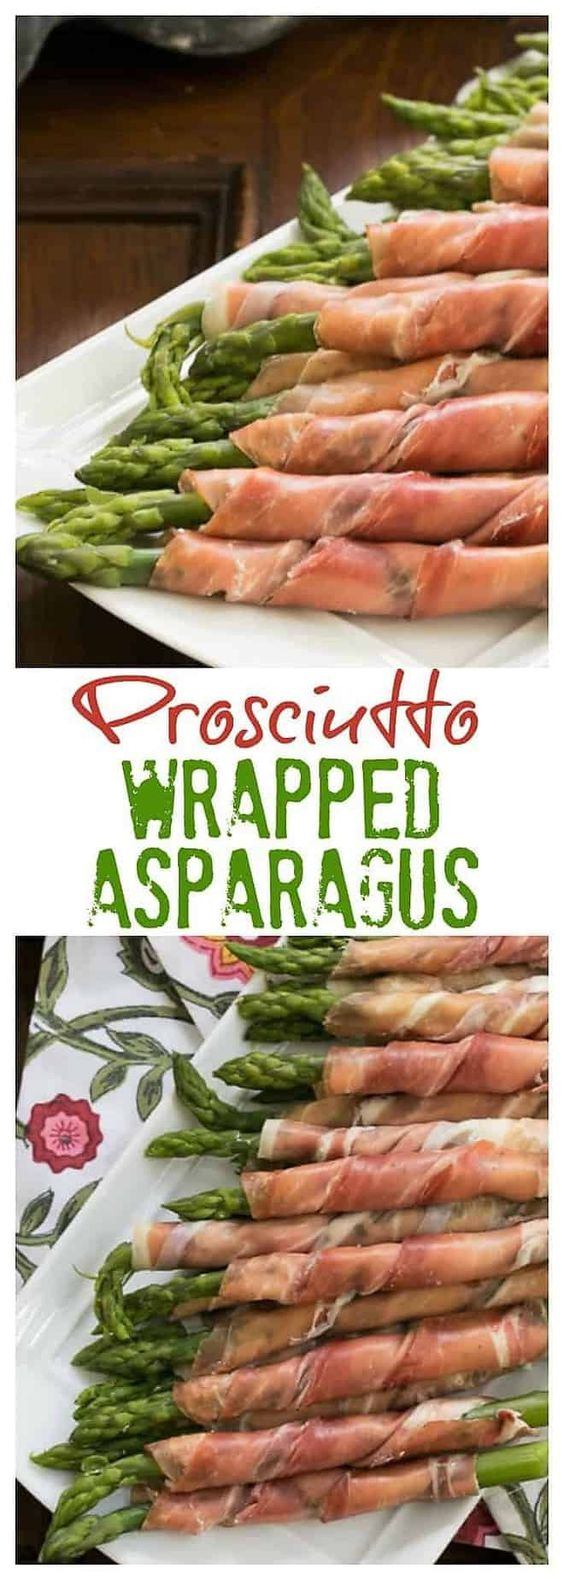 Prosciutto Wrapped Asparagus with Boursin is an easy, elegant 3-ingredient appetizer that ALWAYS gets rave reviews! #appetizer #easy #asparagus #prosciutto #3ingredients #easyrecipe #springappetizer #thatskinnychickcanbake